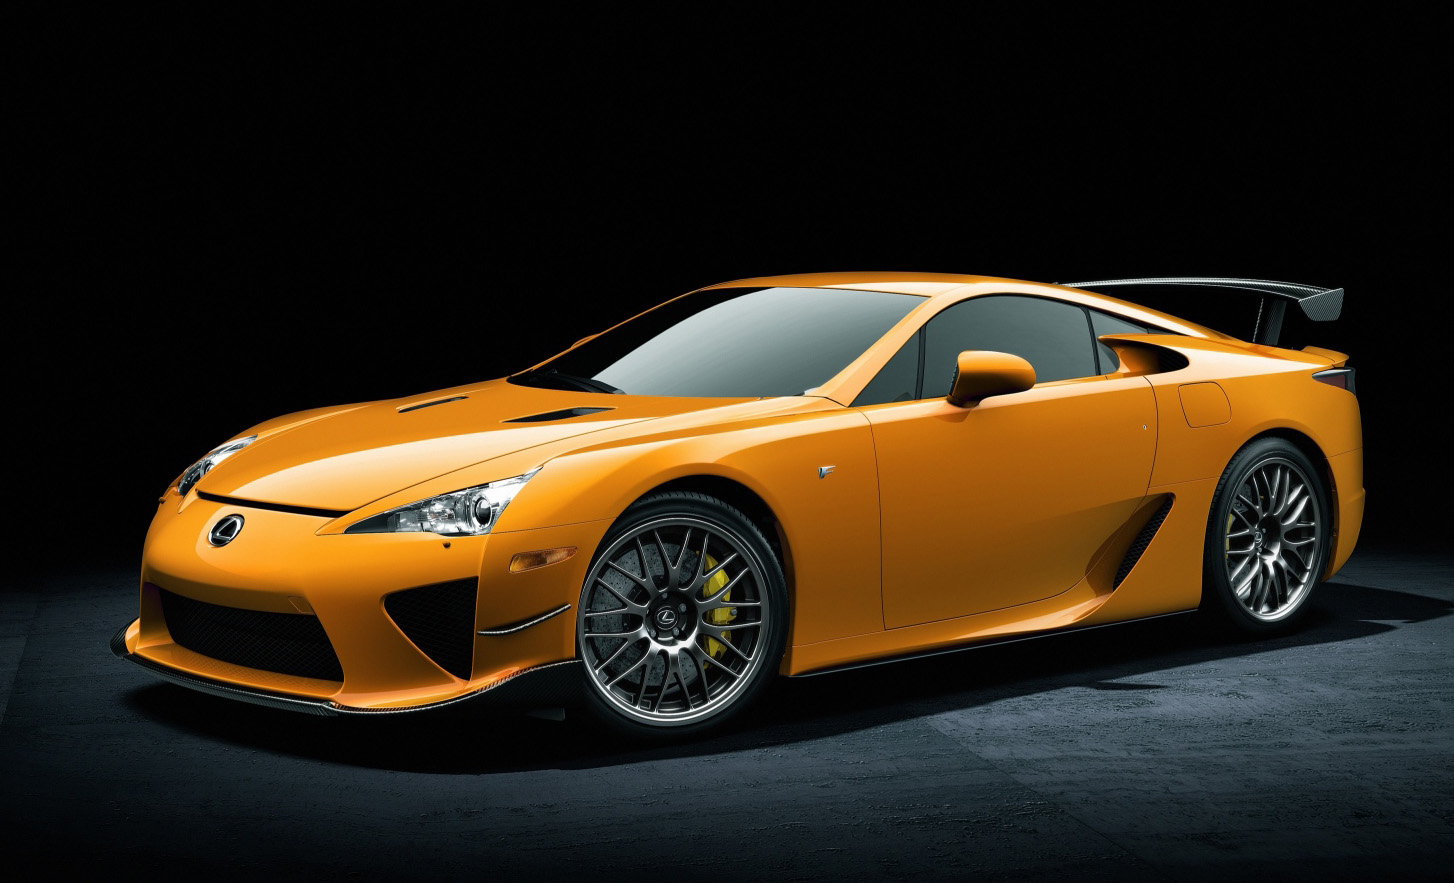 2012 lexus lfa nurburgring luxury concept sport cars best car. Black Bedroom Furniture Sets. Home Design Ideas